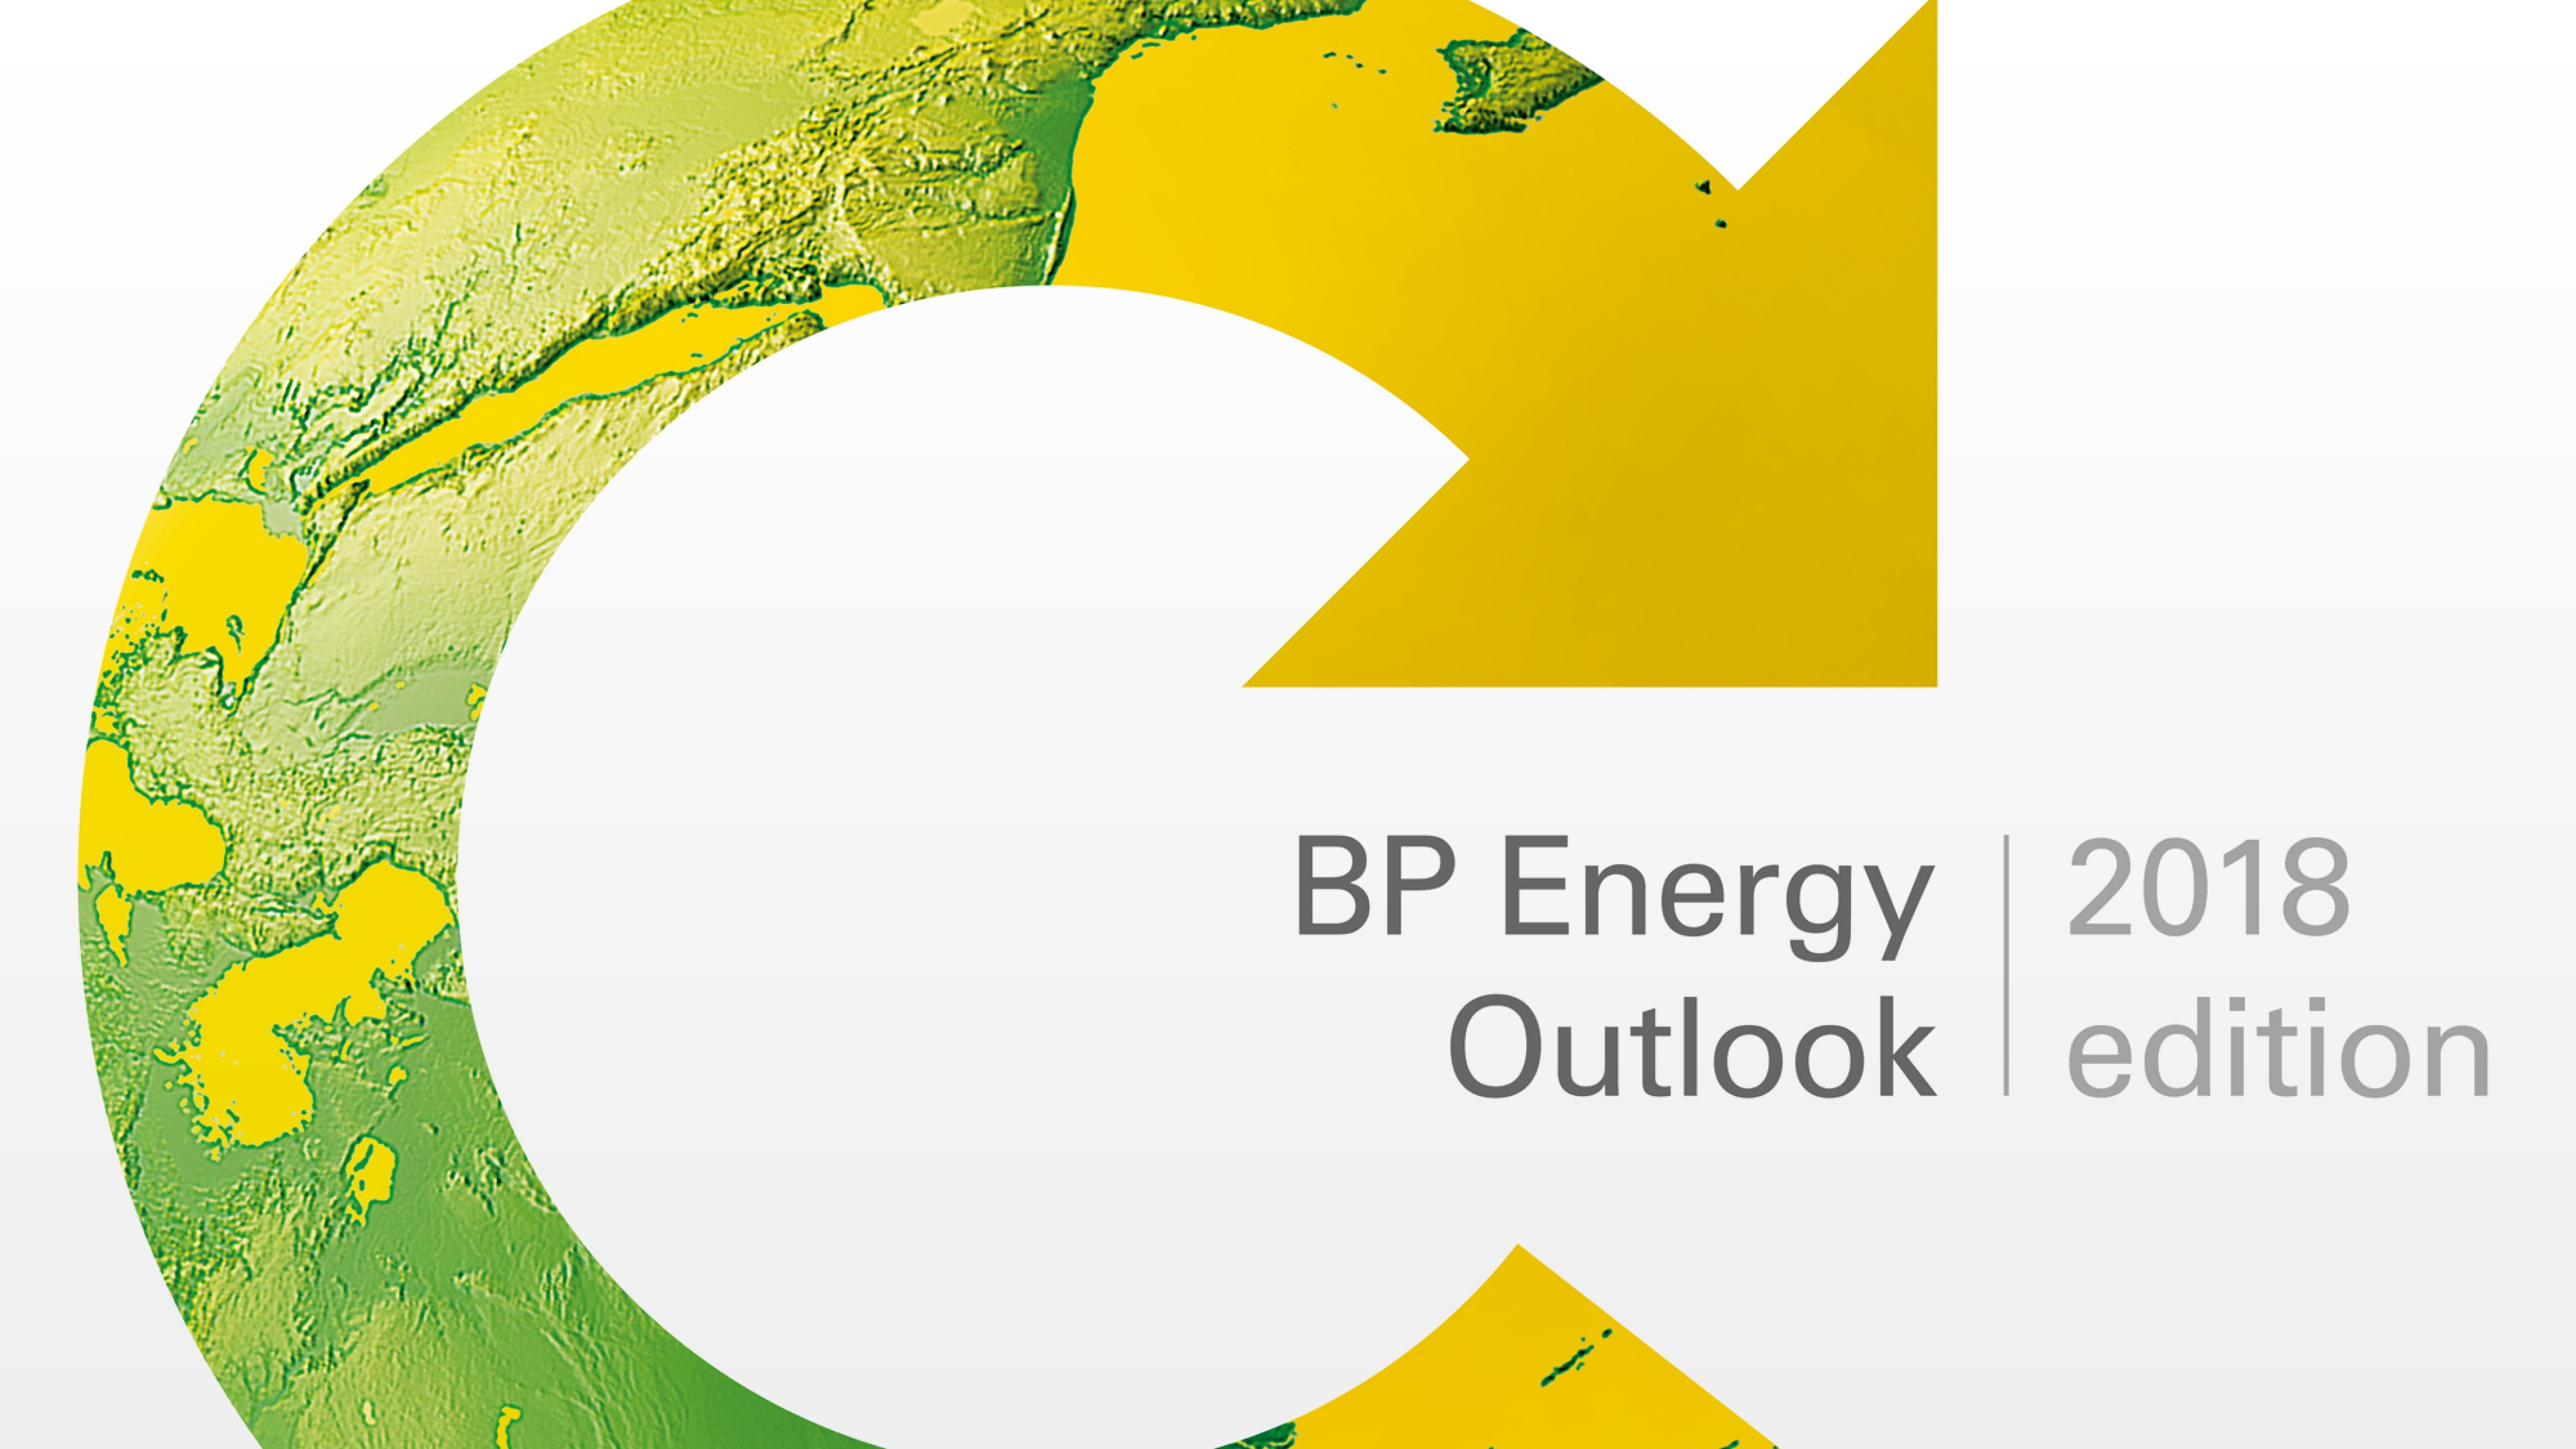 BP Energy Outlook graphic